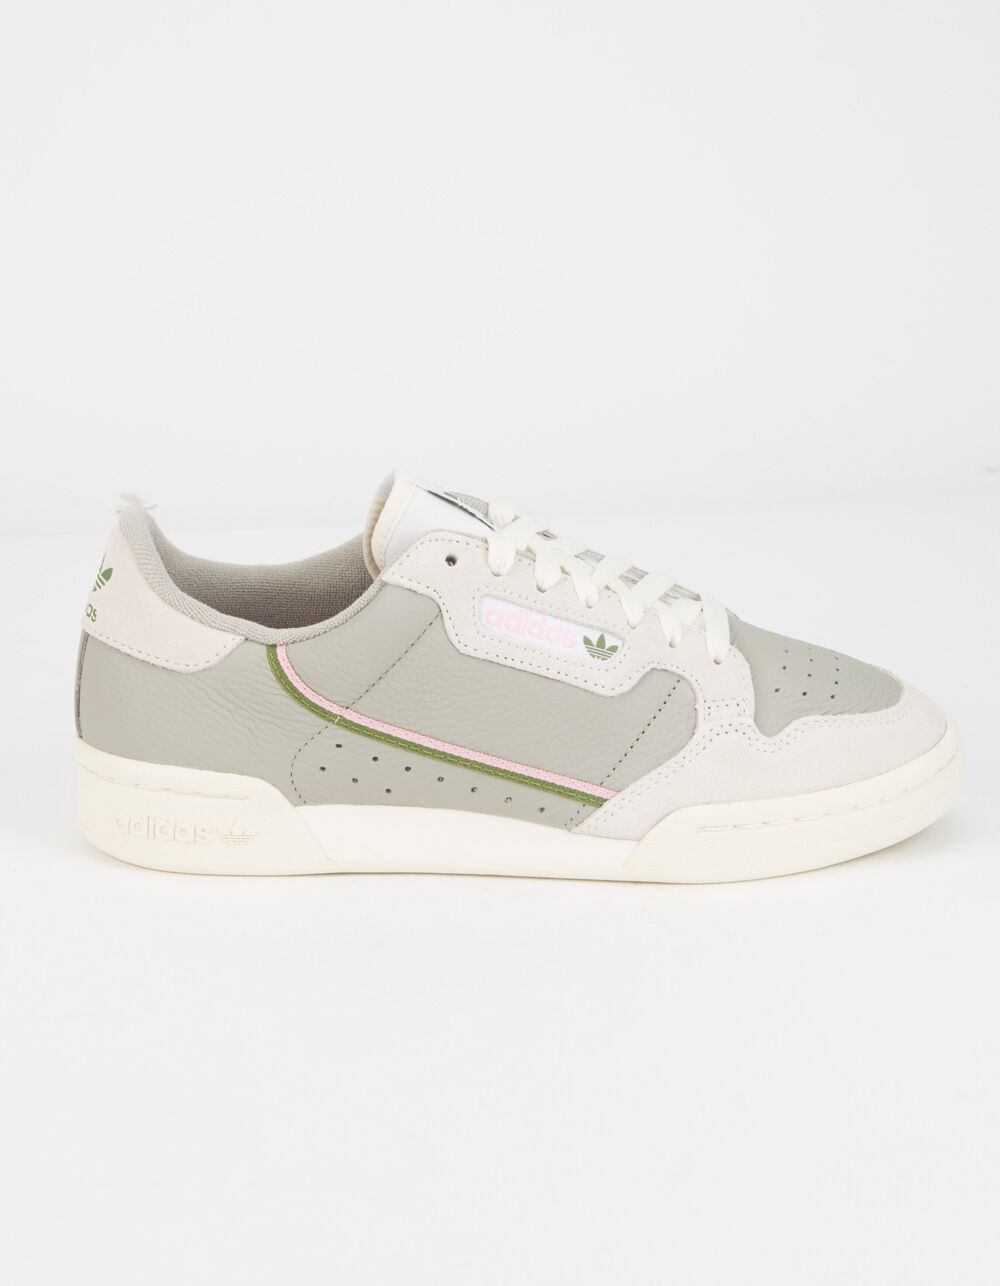 ADIDAS Continental 80 Sesame & Raw White Shoes